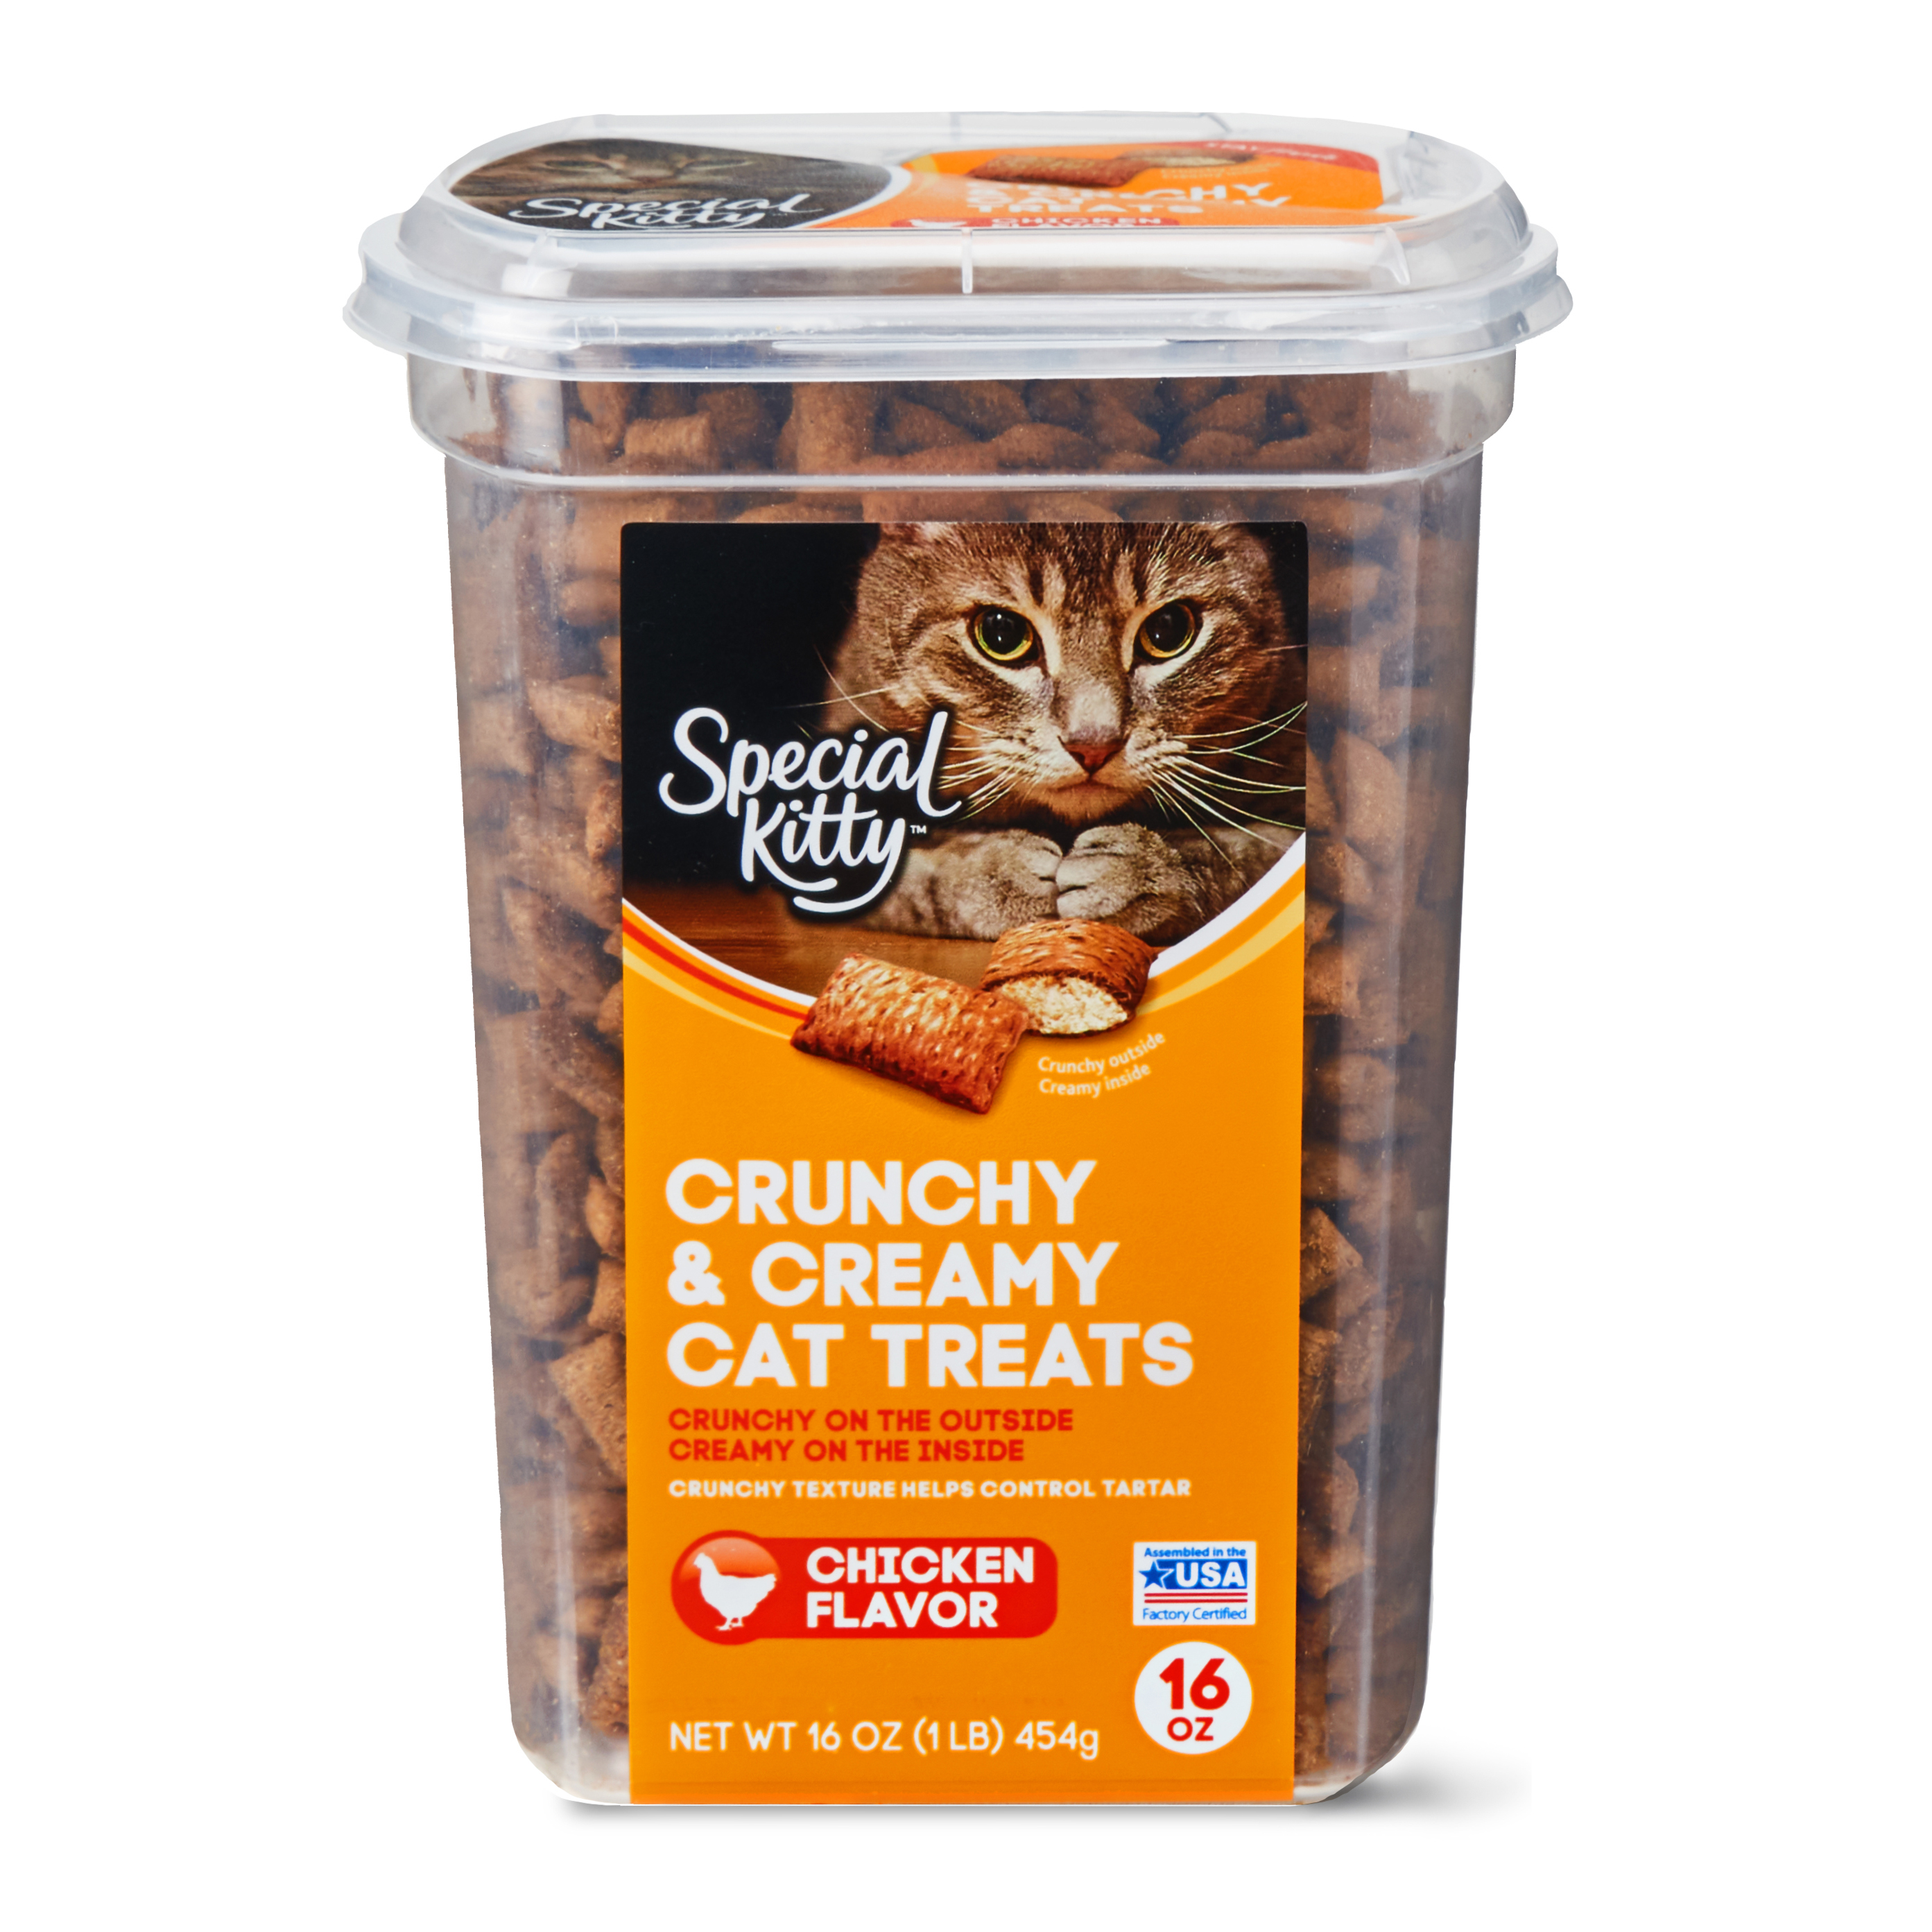 Special Kitty Crunchy & Creamy Cat Treats, Chicken Flavor, 16 oz